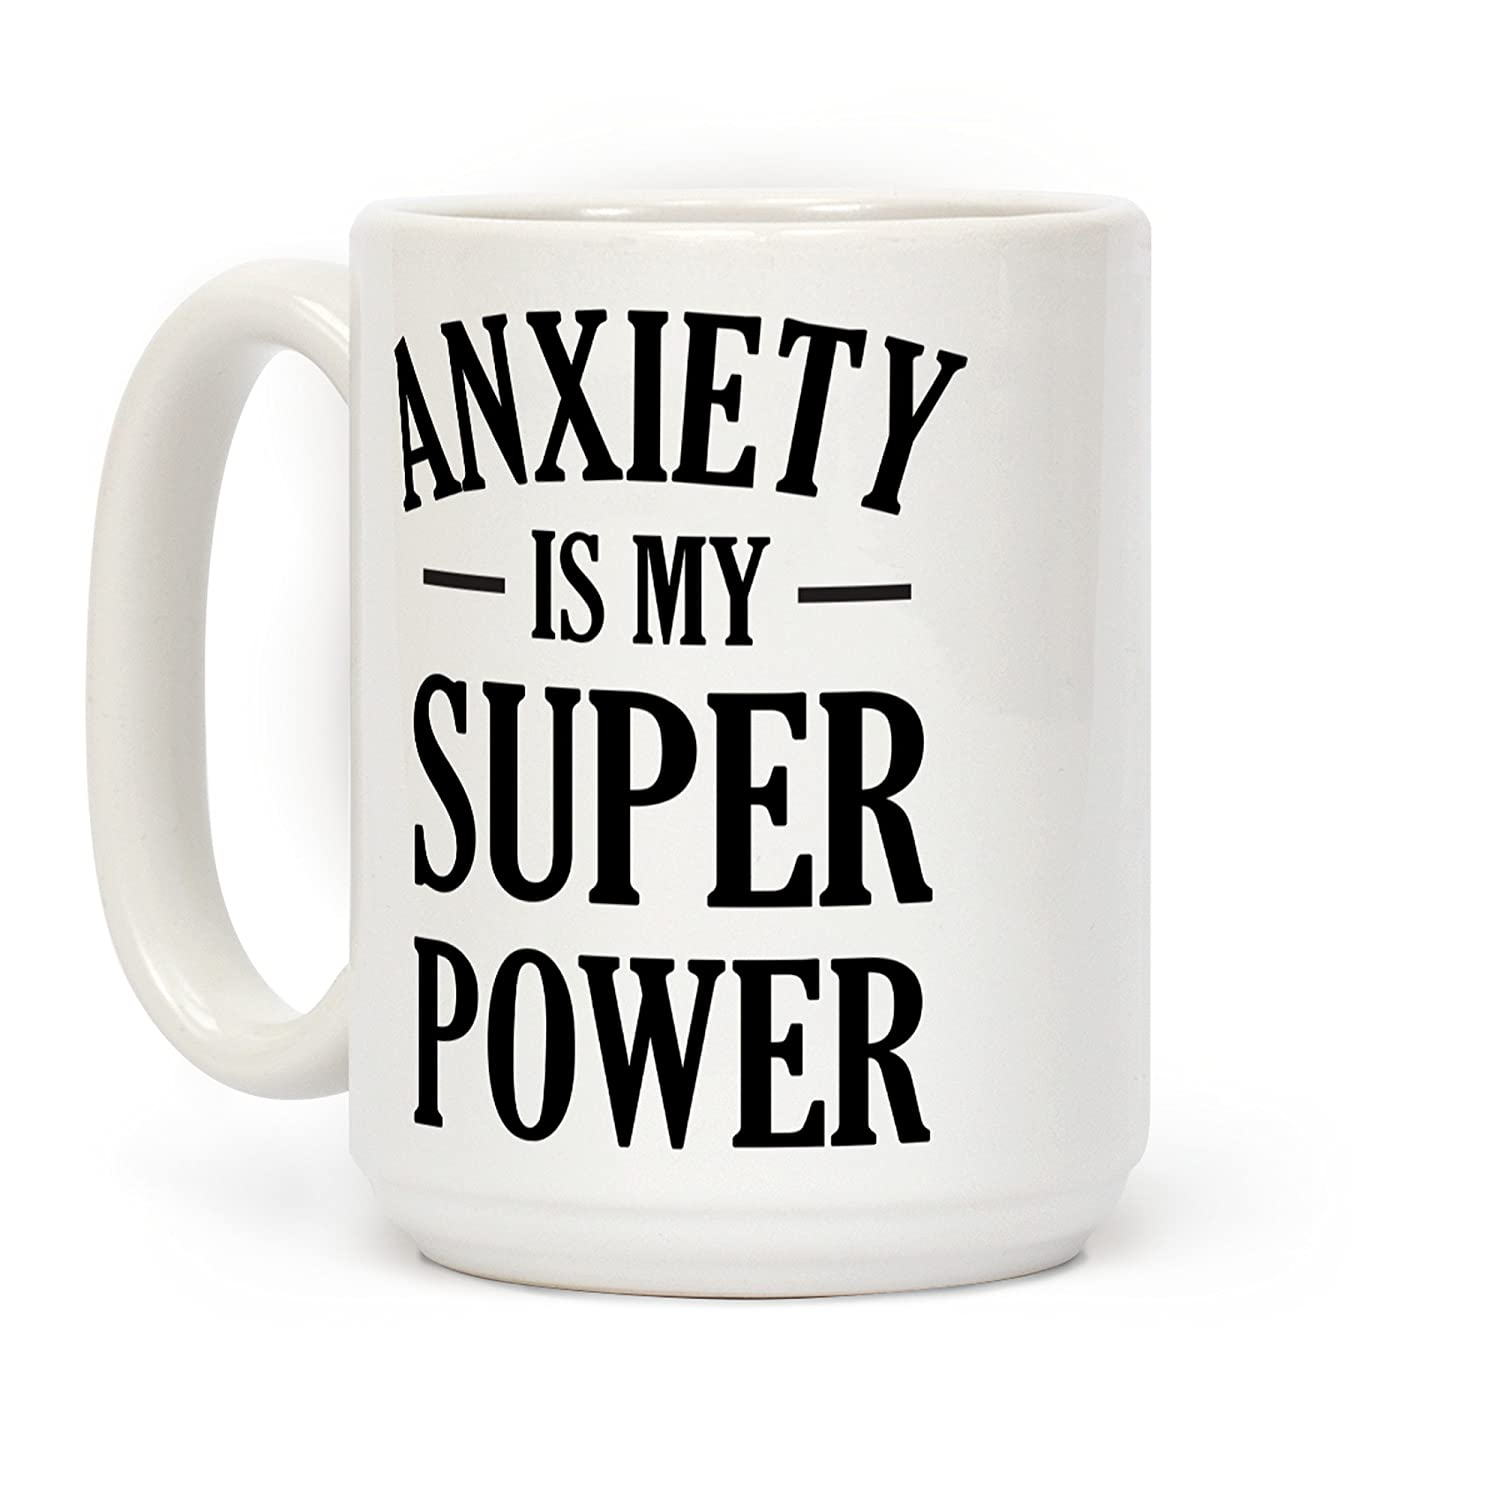 LookHUMAN Anxiety Is My Superpower White 15 Ounce Ceramic Coffee Mug